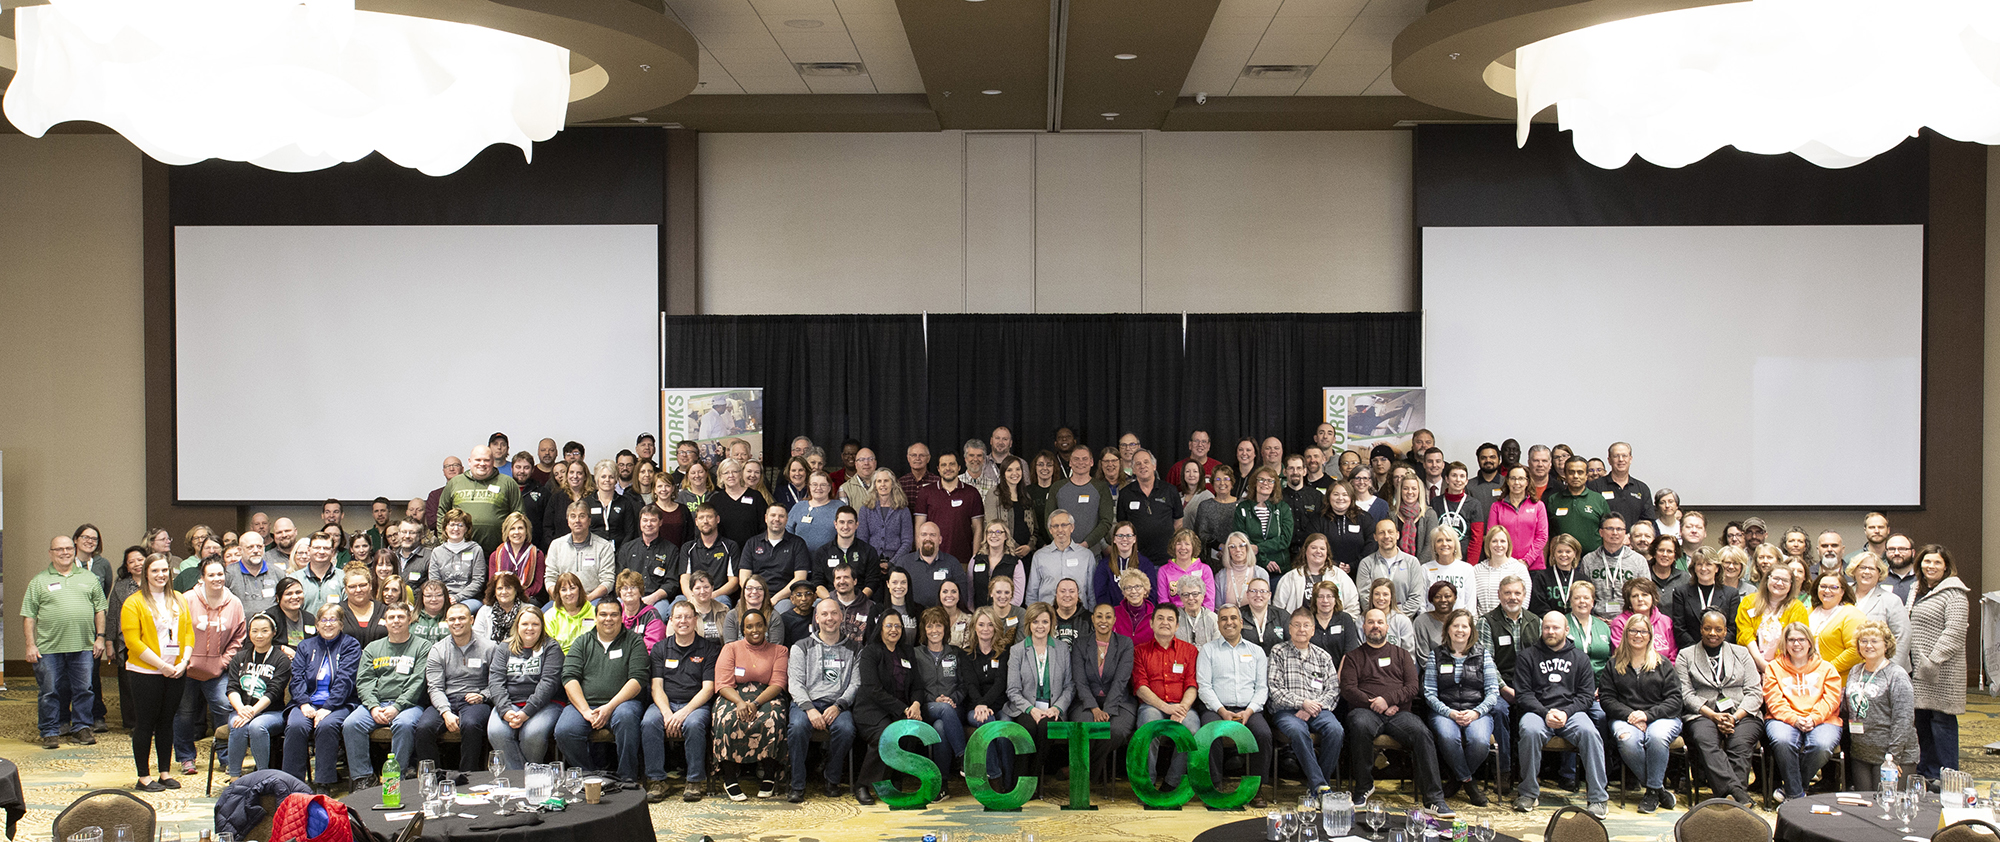 SCTCC staff and faculty at Future Summit event 2020